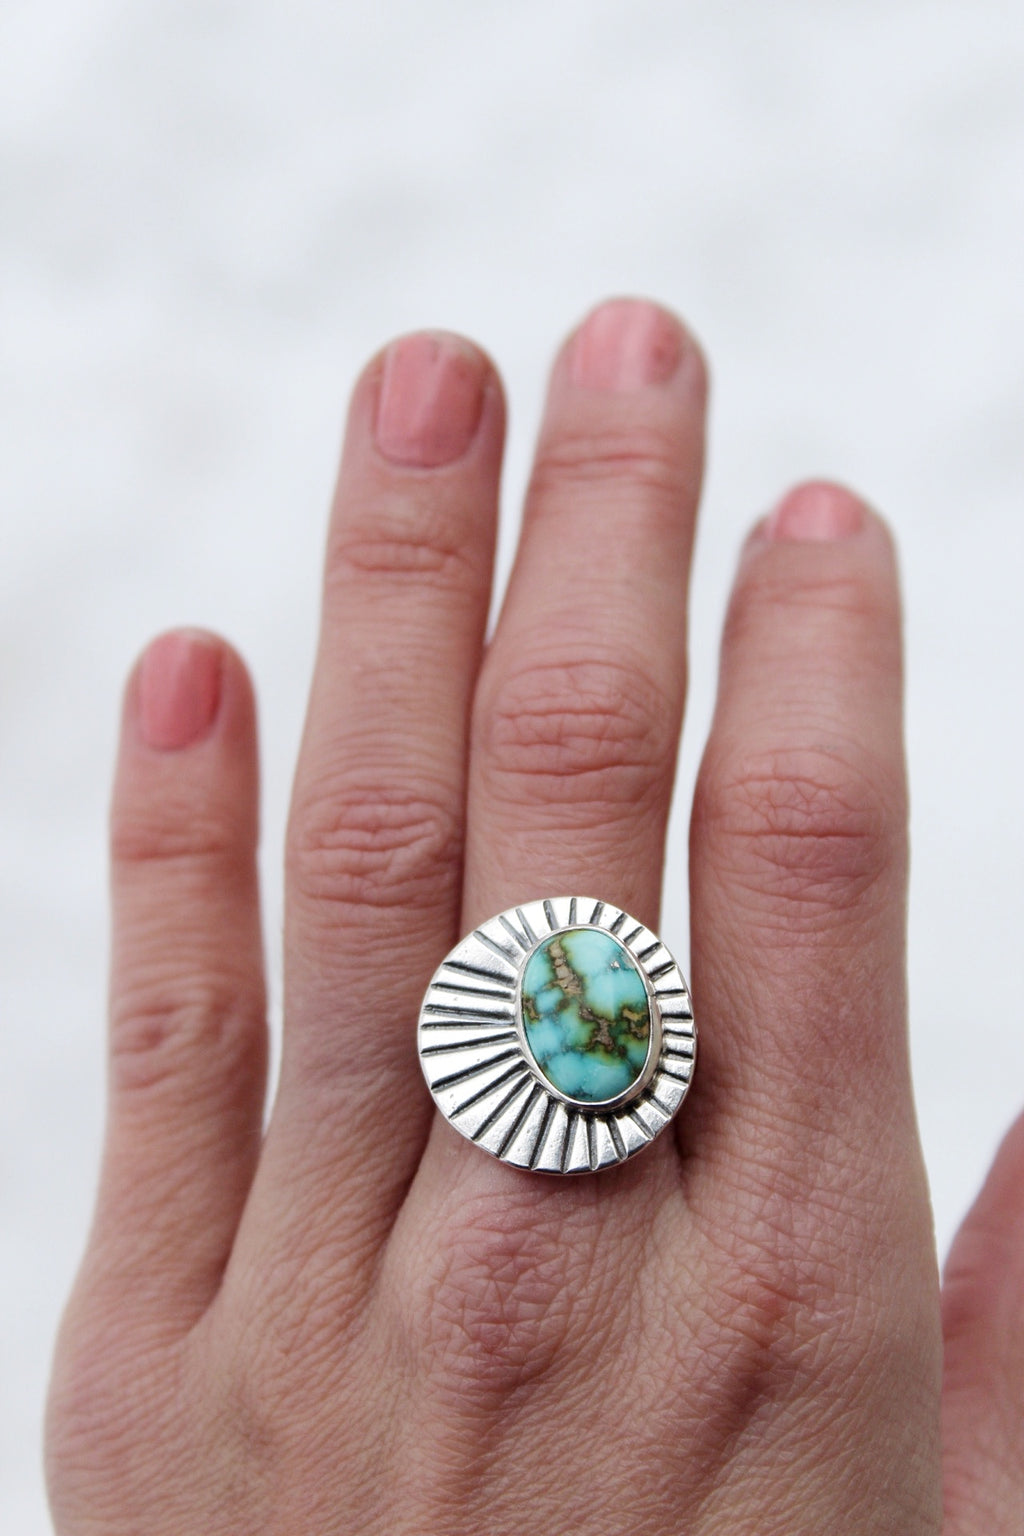 Sunburst Ring #11